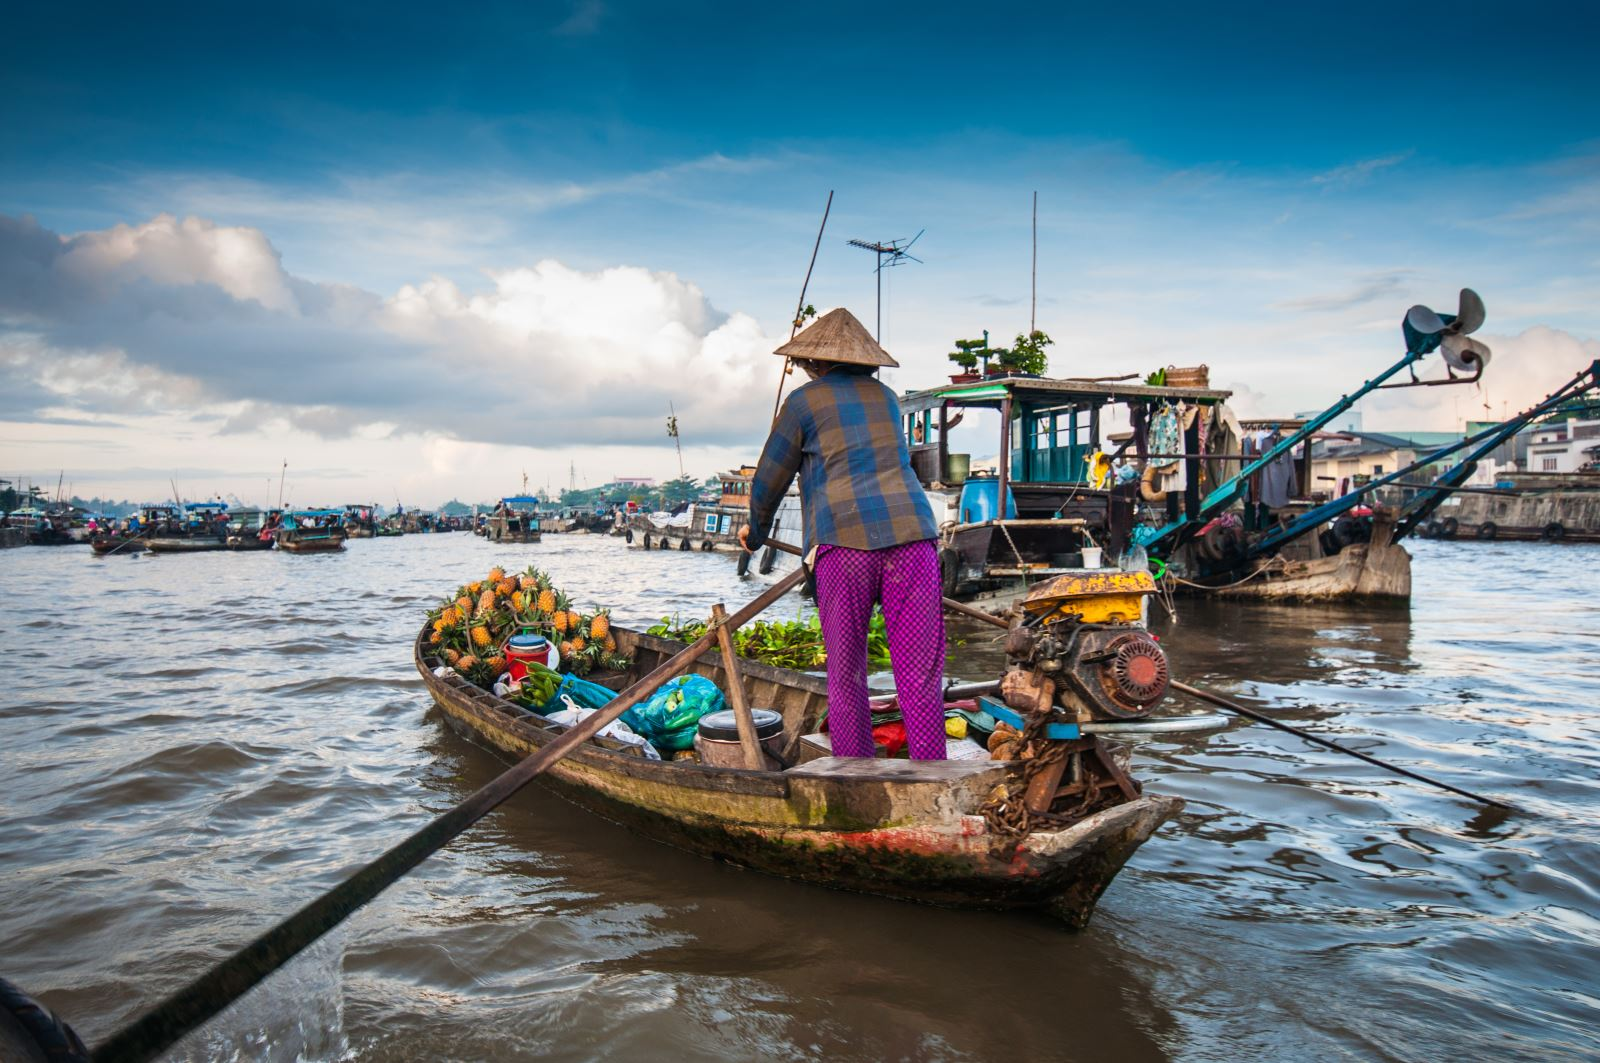 Riding in Mekong Delta 1 day tour to find out its harmony with the nature